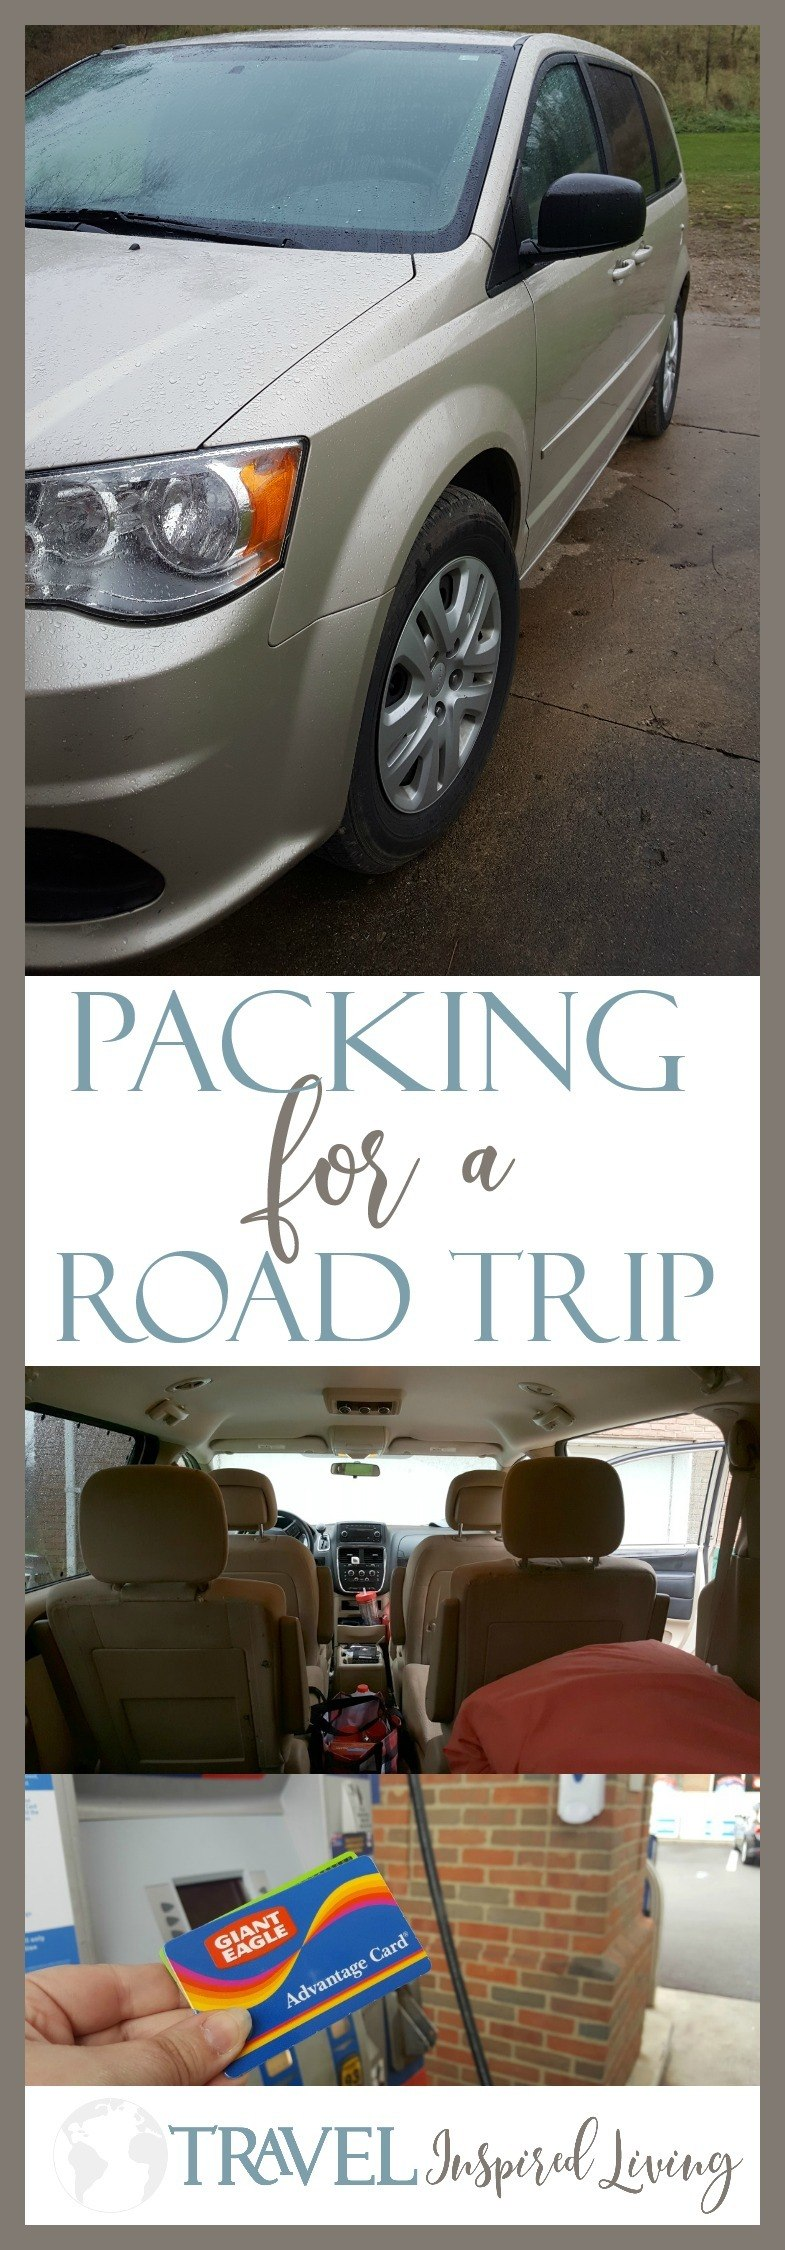 Tips for Packing for a Road Trip with a Free Printable. #GiantEaglePerks #ad